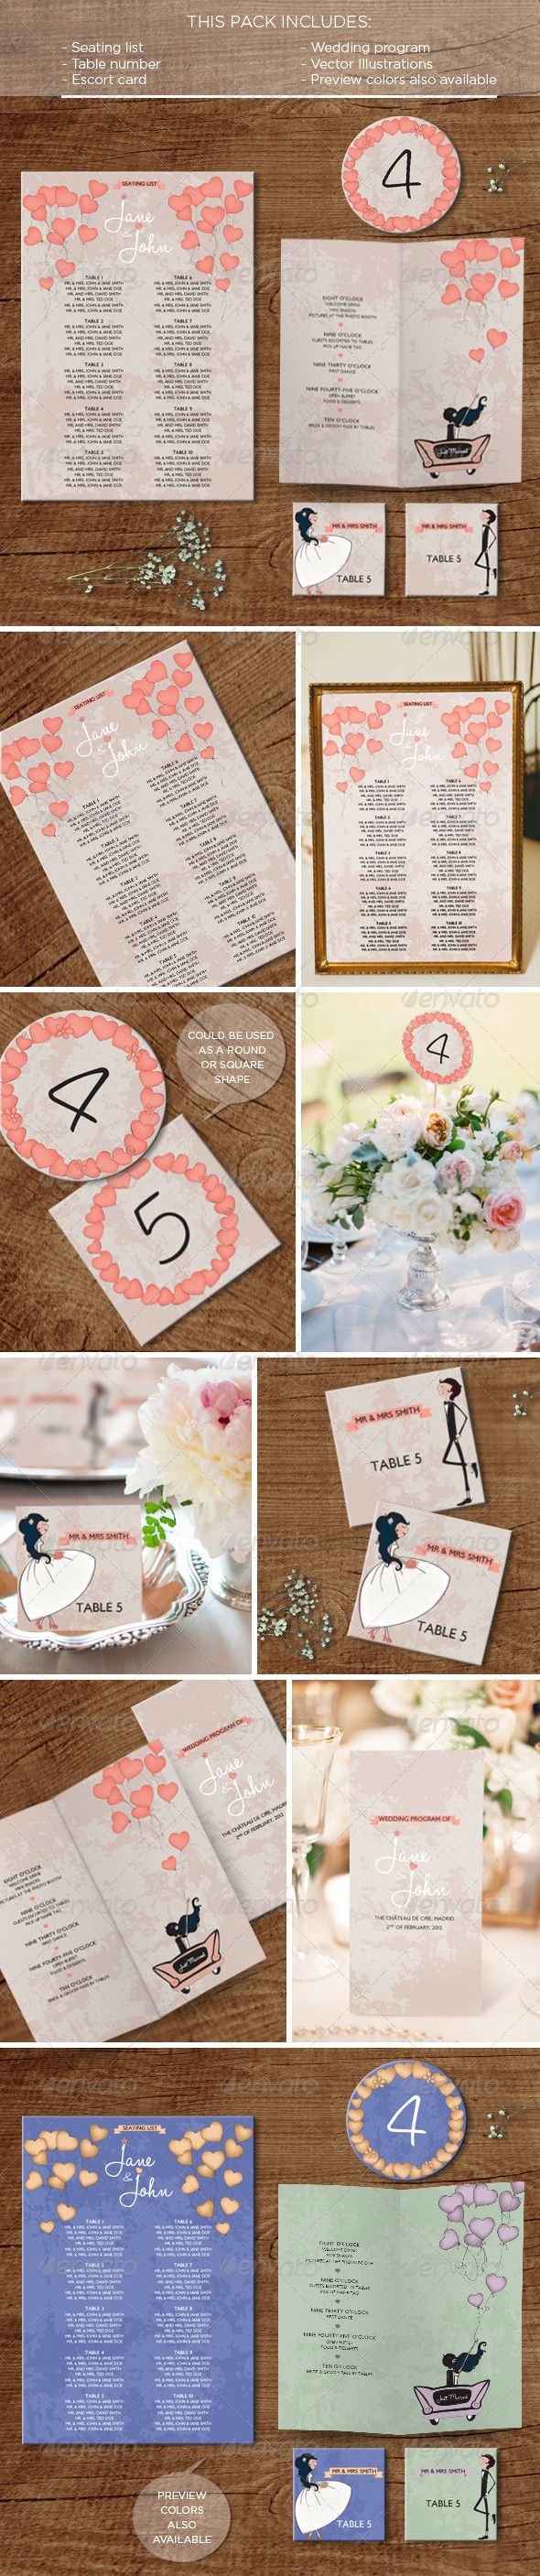 In the Air: Wedding Pack  #GraphicRiver        This pack includes   Seating list (A4: 21×29.7 cm)  Table number (10×10 cm)  2 Escort Card designs (7×7 cm)  Wedding Program (closed: 11×21 cm, open: 21×21 cm)    Main file: InDesign file fully editable   EPS files with different color proposals & the vector illustrations The free fonts used can be found on:   .dafont /halohandletter.font   .dafont /london-between.font     Created: 29June13 GraphicsFilesIncluded: VectorEPS #InDesignINDD Layered…